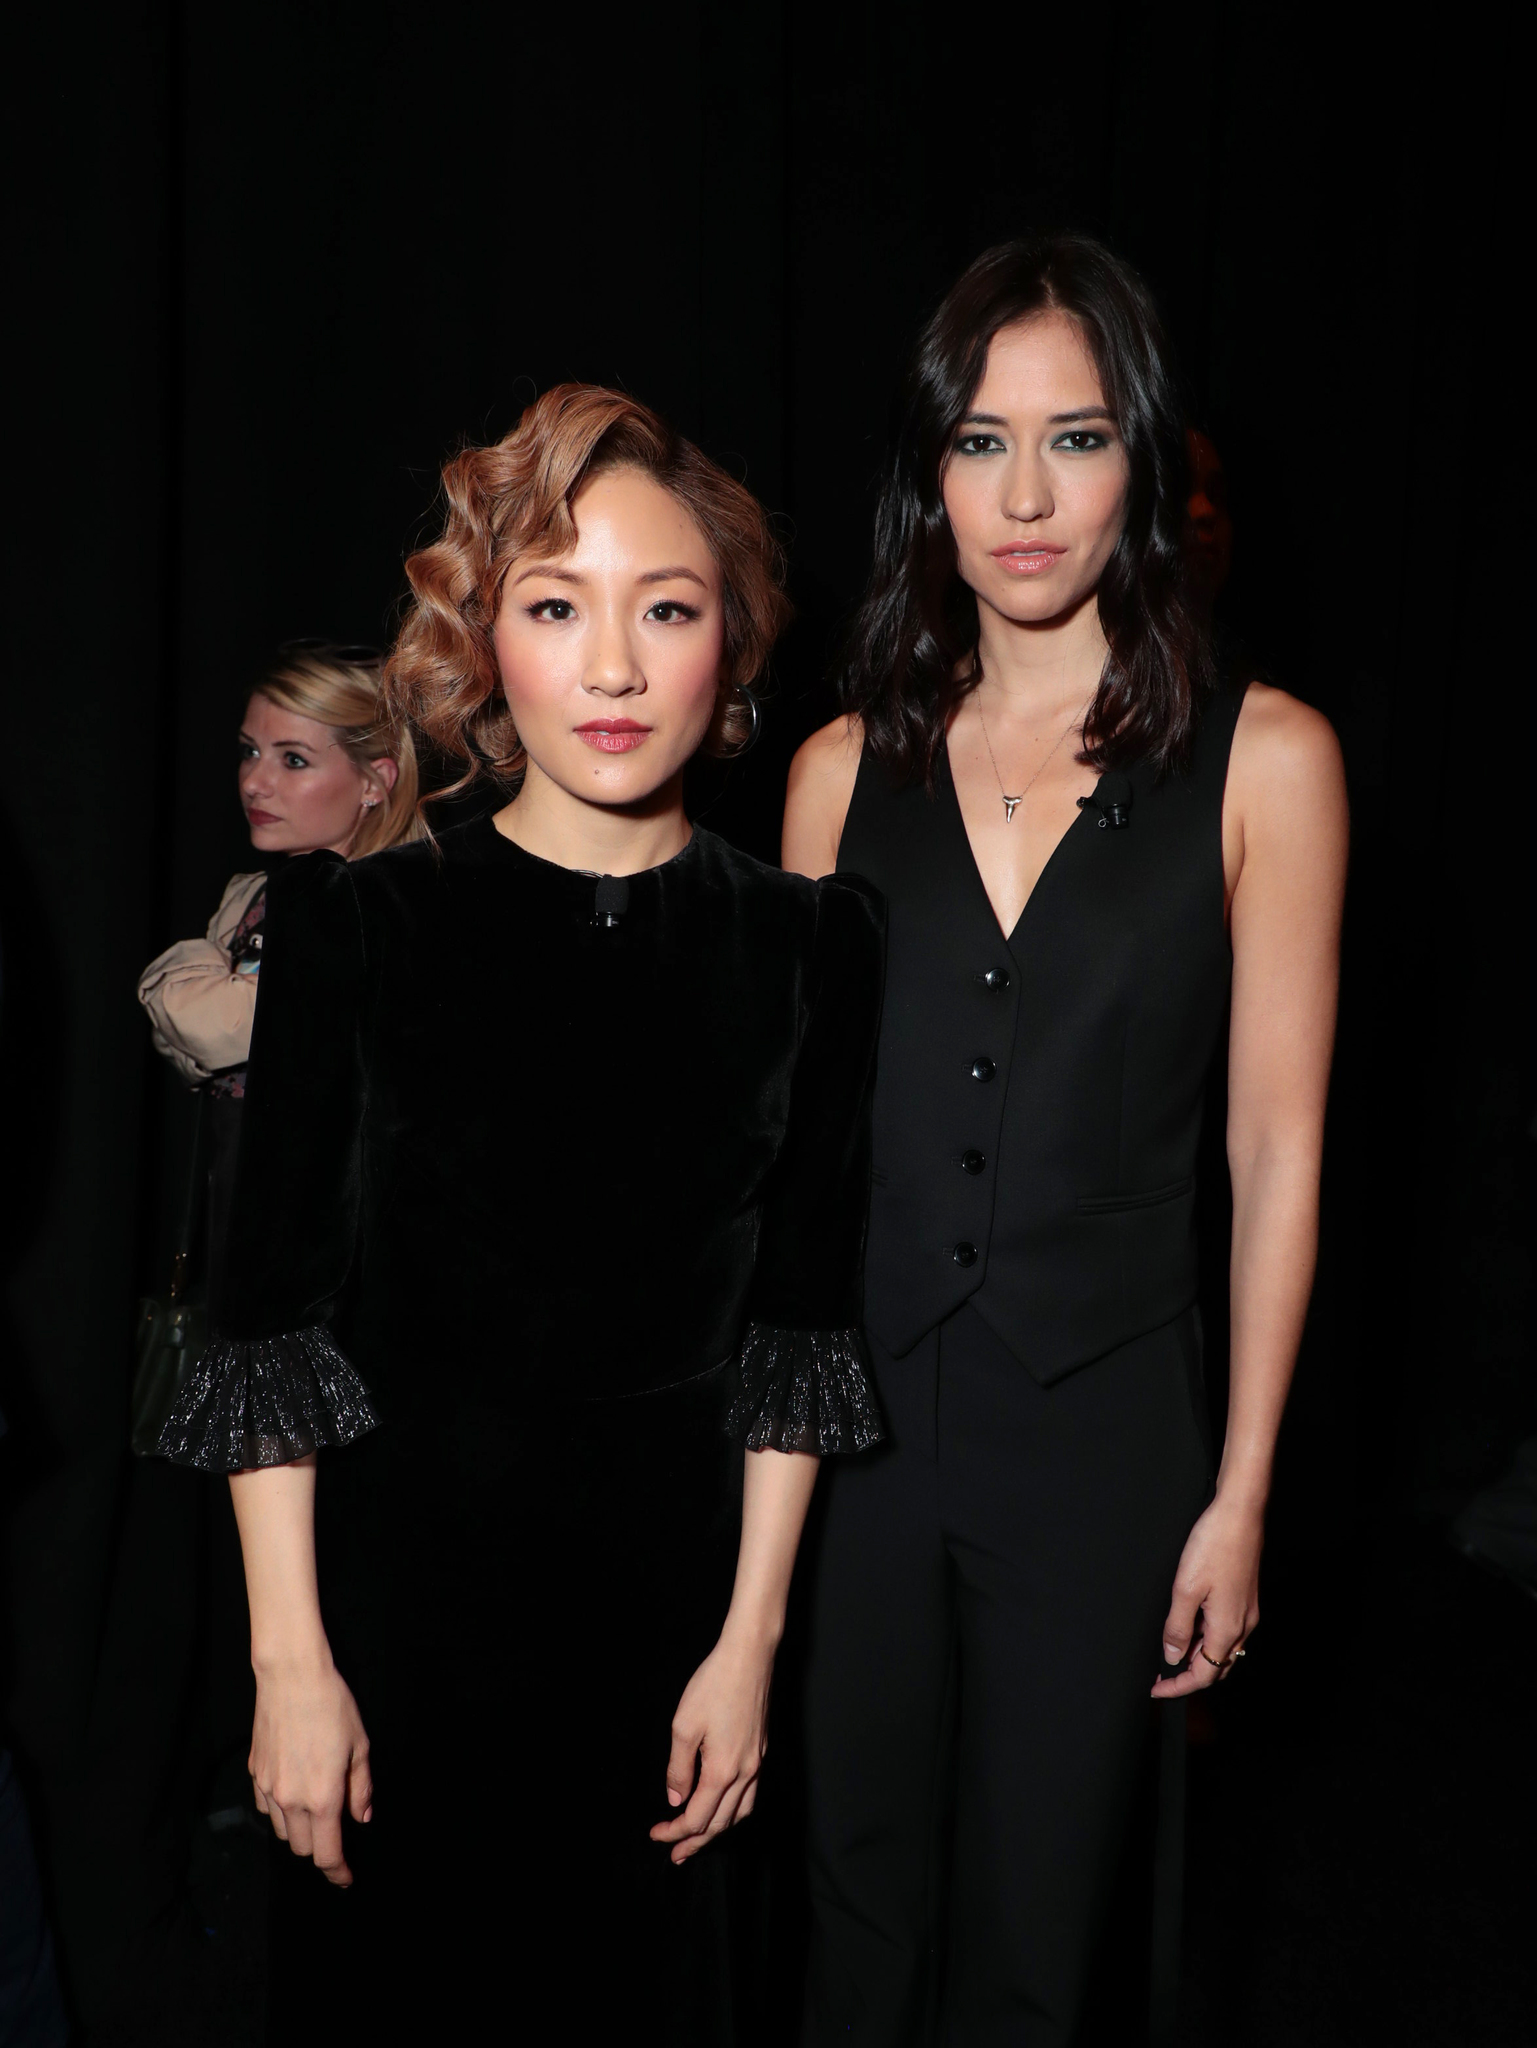 Constance Wu and Sonoya Mizuno at an event for Crazy Rich Asians (2018)